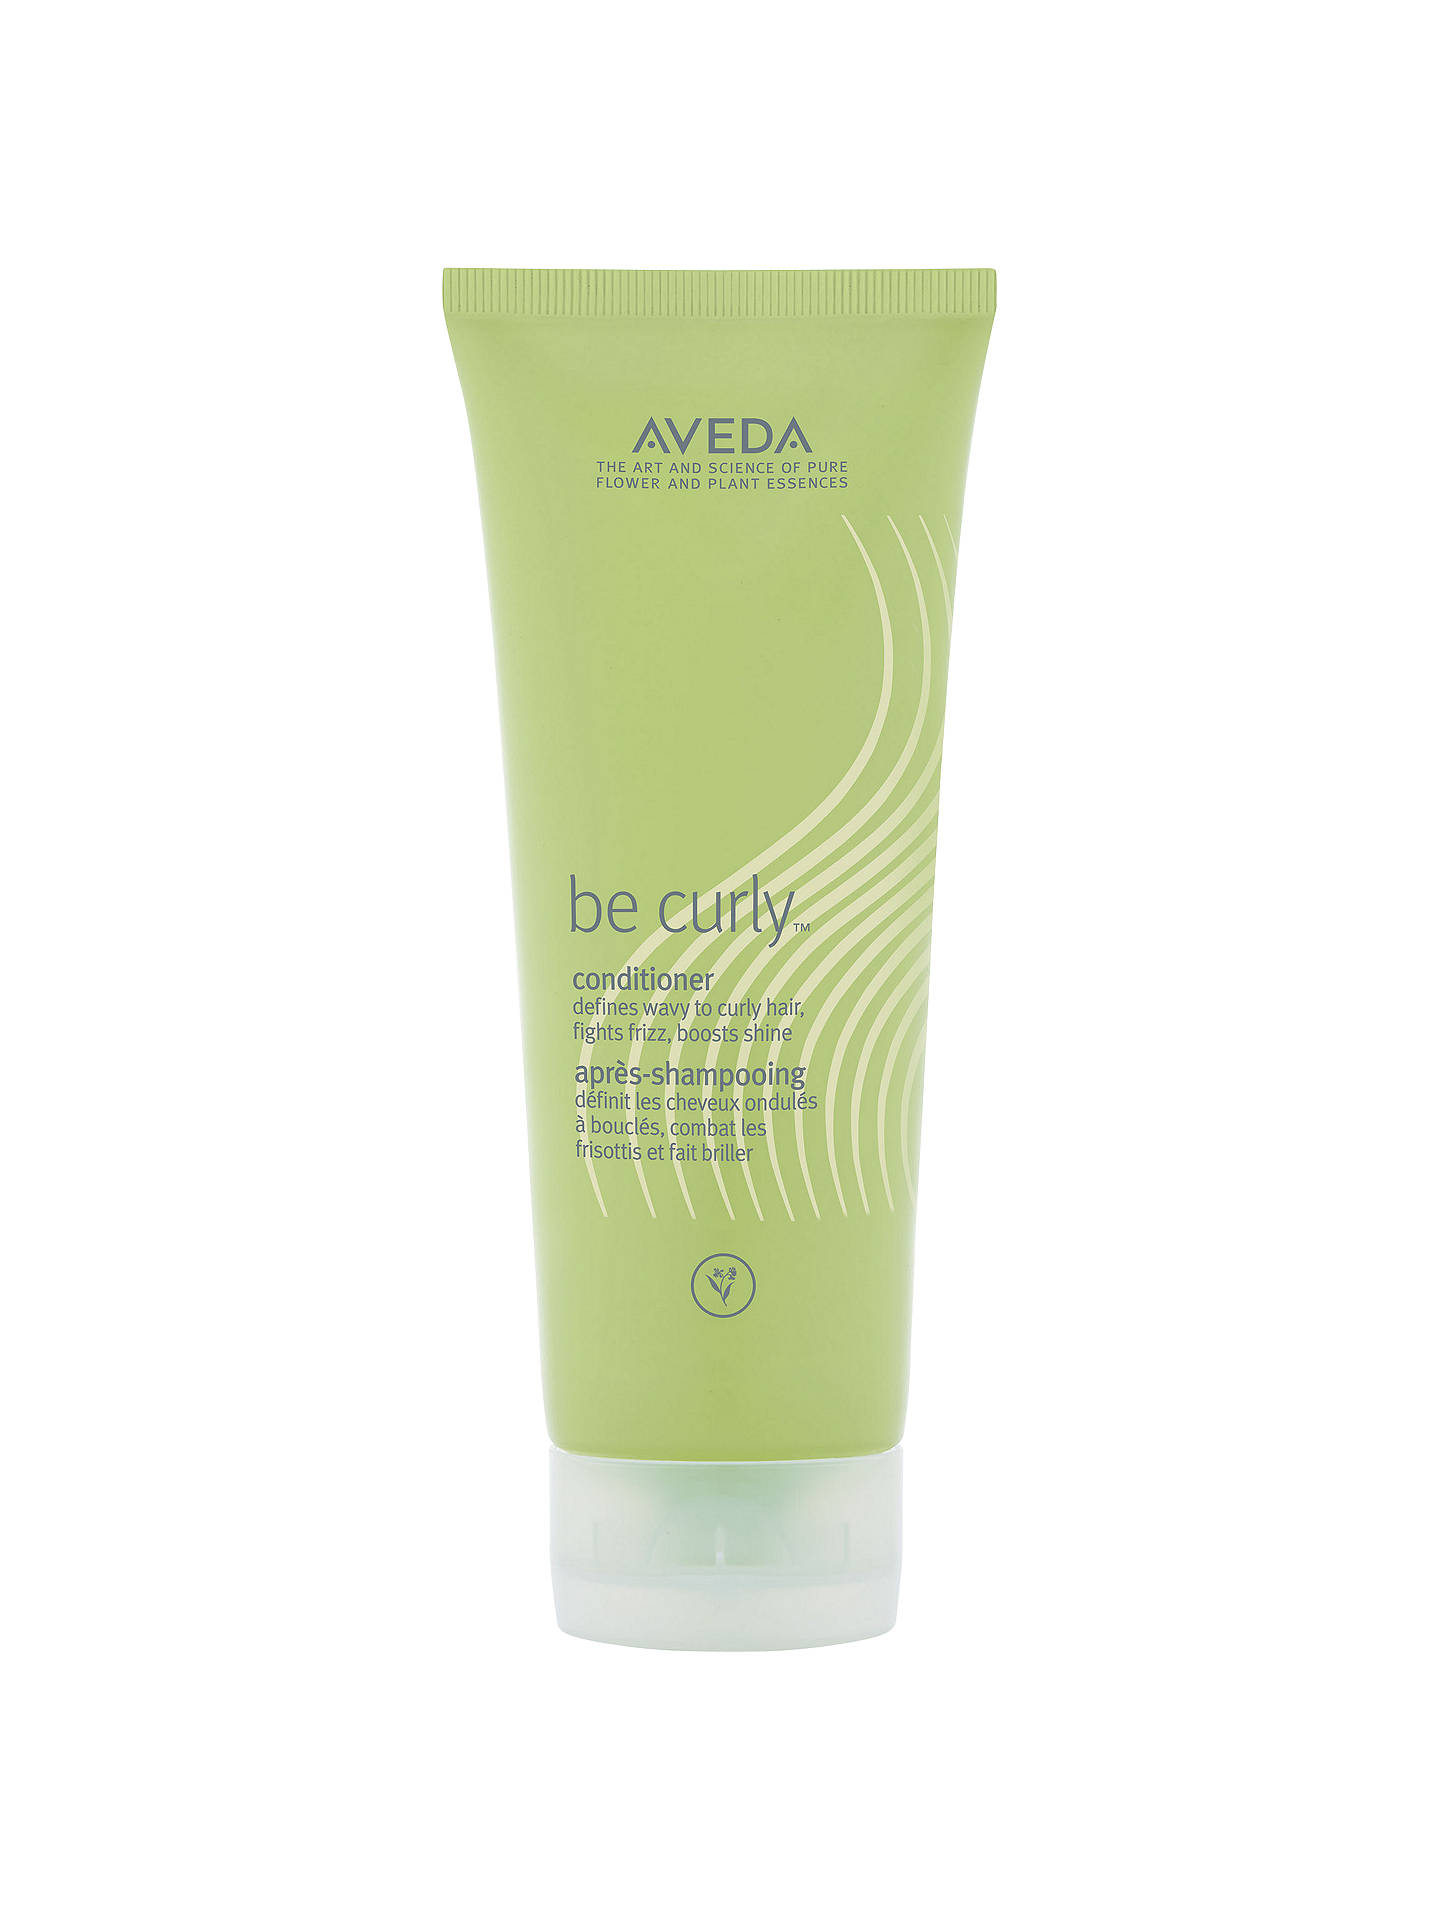 BuyAVEDA Be Curly™ Conditioner, 200ml Online at johnlewis.com